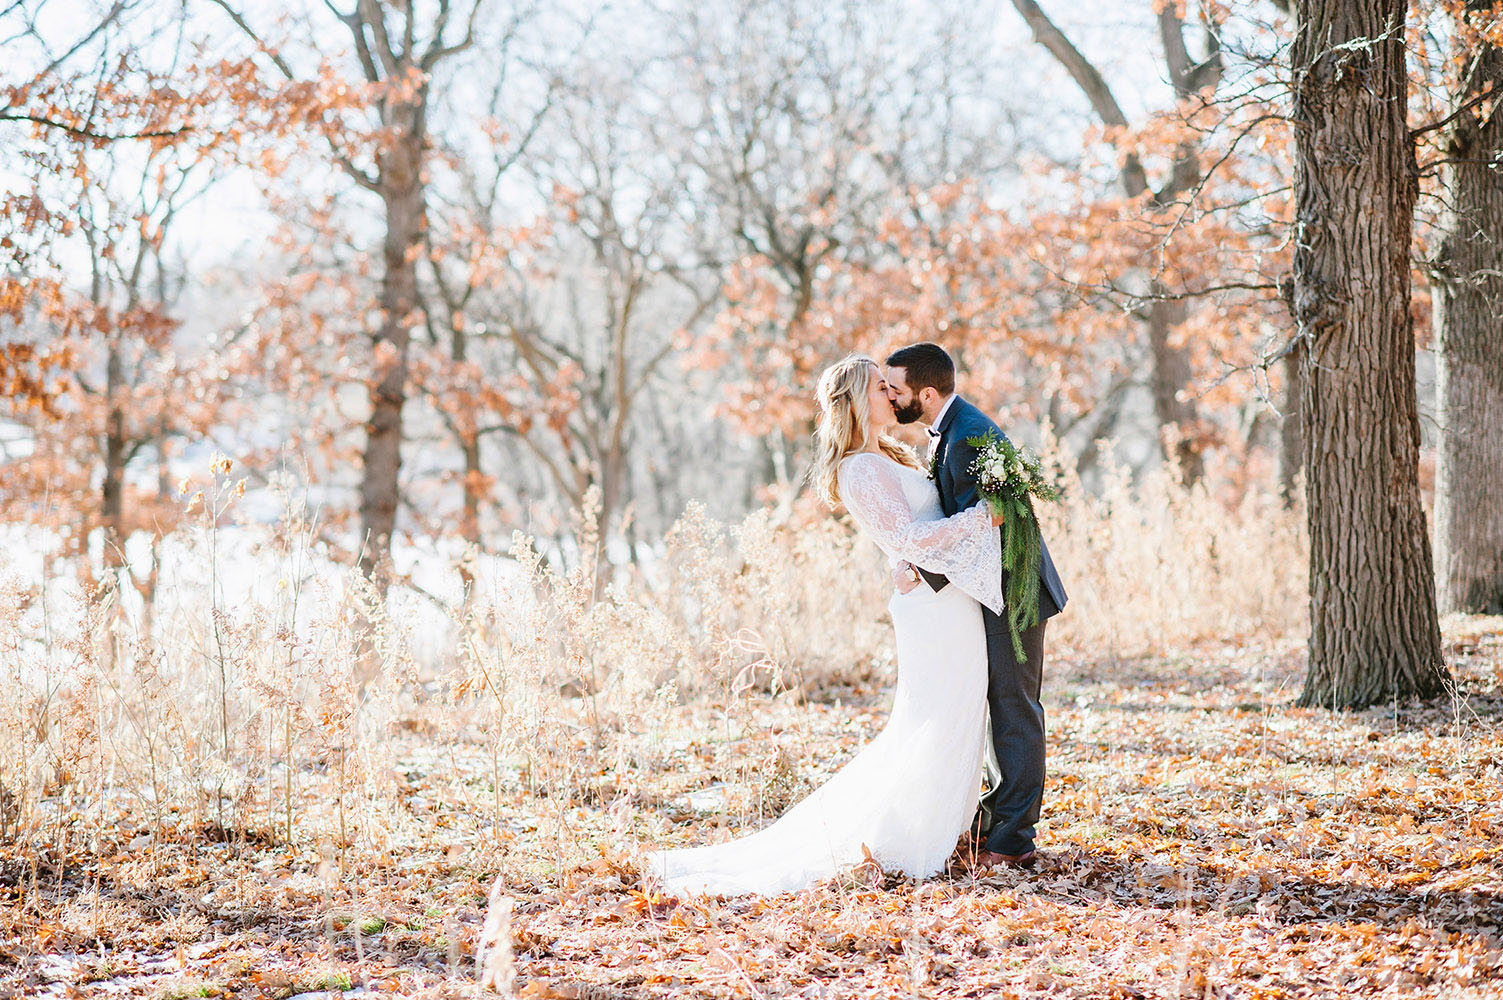 Bride in lace dress kissing groom in woods